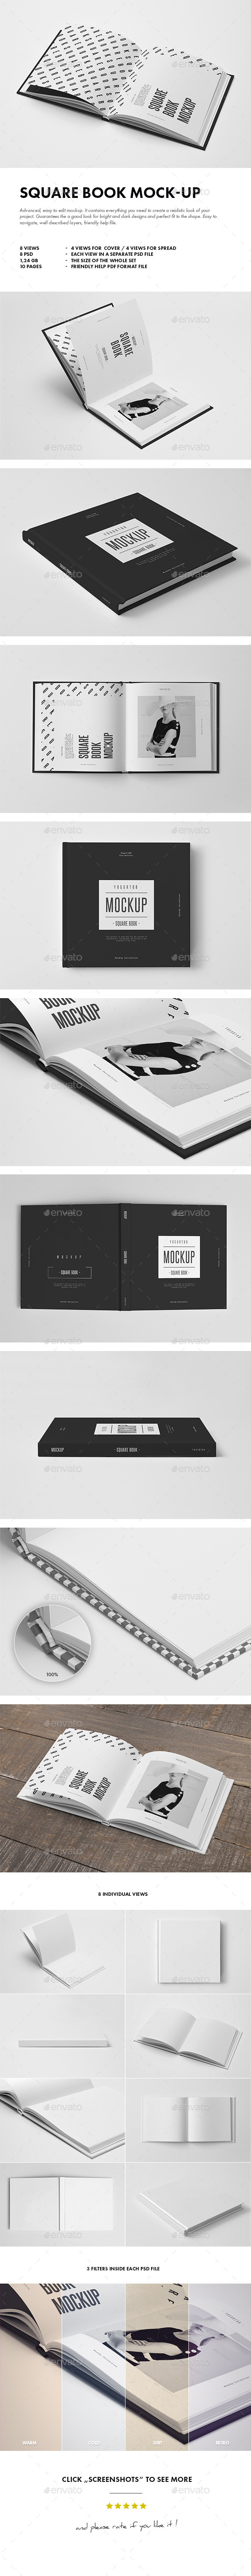 GraphicRiver Square Book Mock-up 8911213